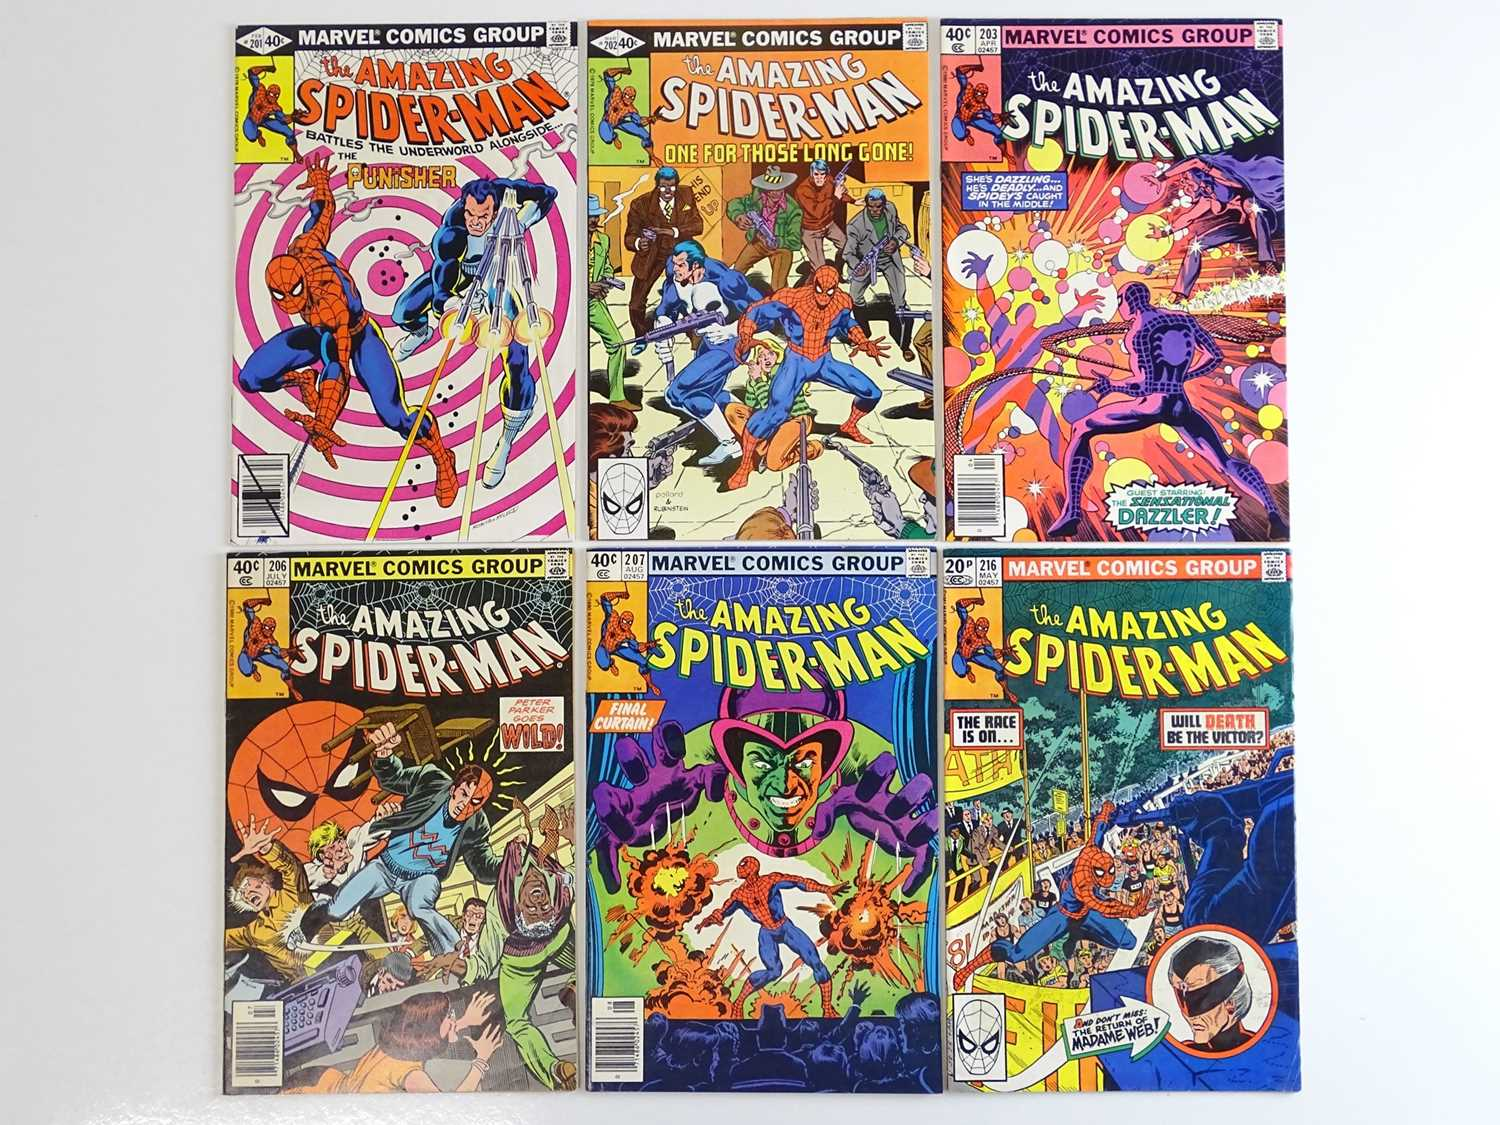 AMAZING SPIDER-MAN #201, 202, 203, 206, 207, 216 - (6 in Lot) - (1980/81 - MARVEL) - Includes